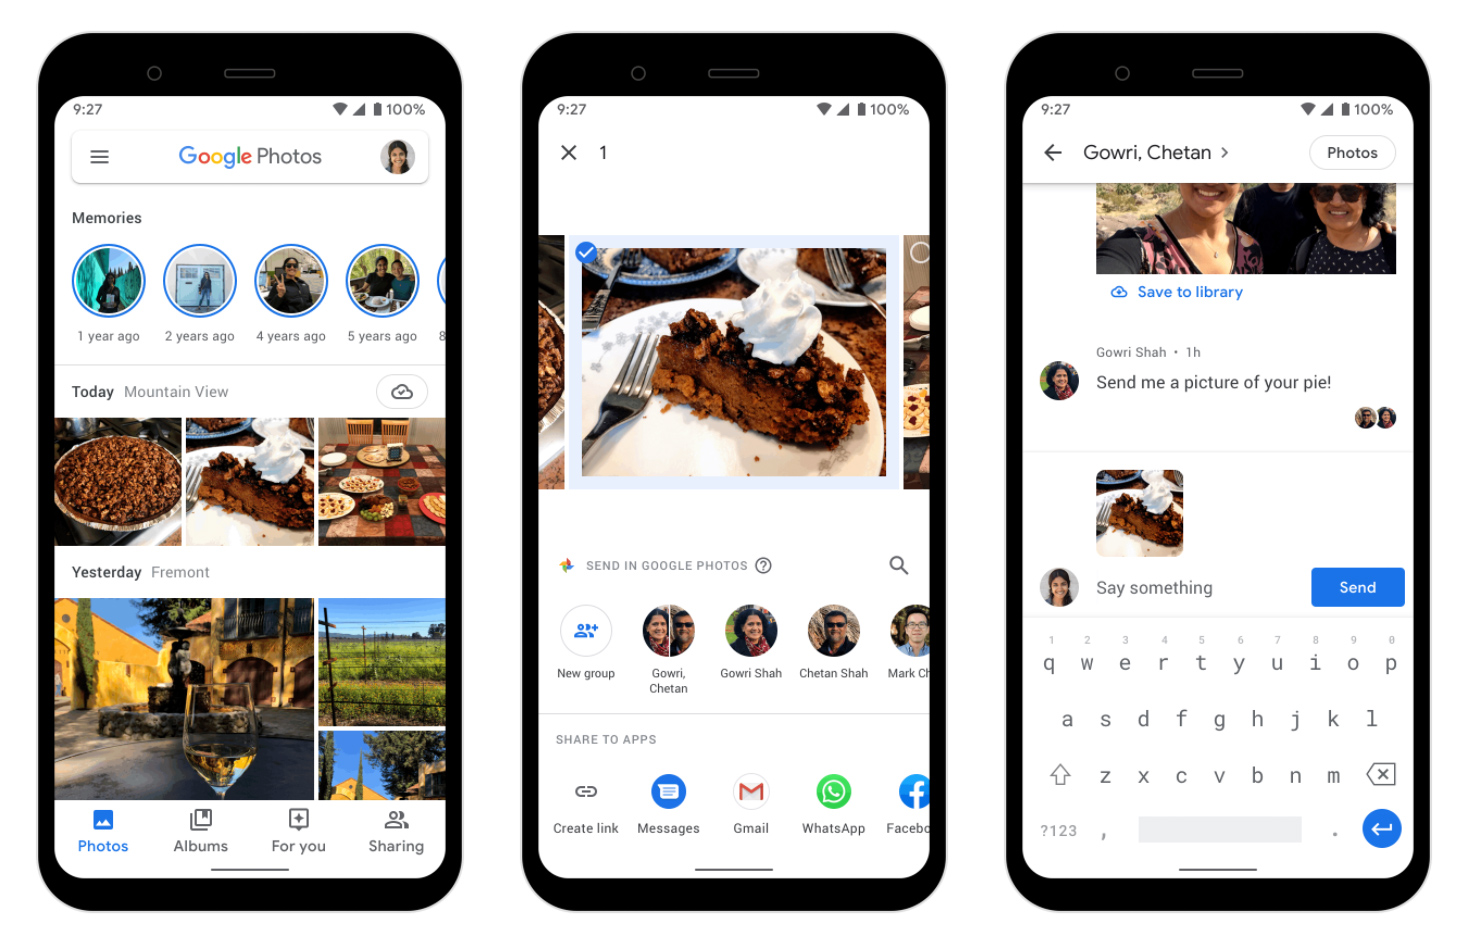 Google Photos Messaging. You can send pictures.